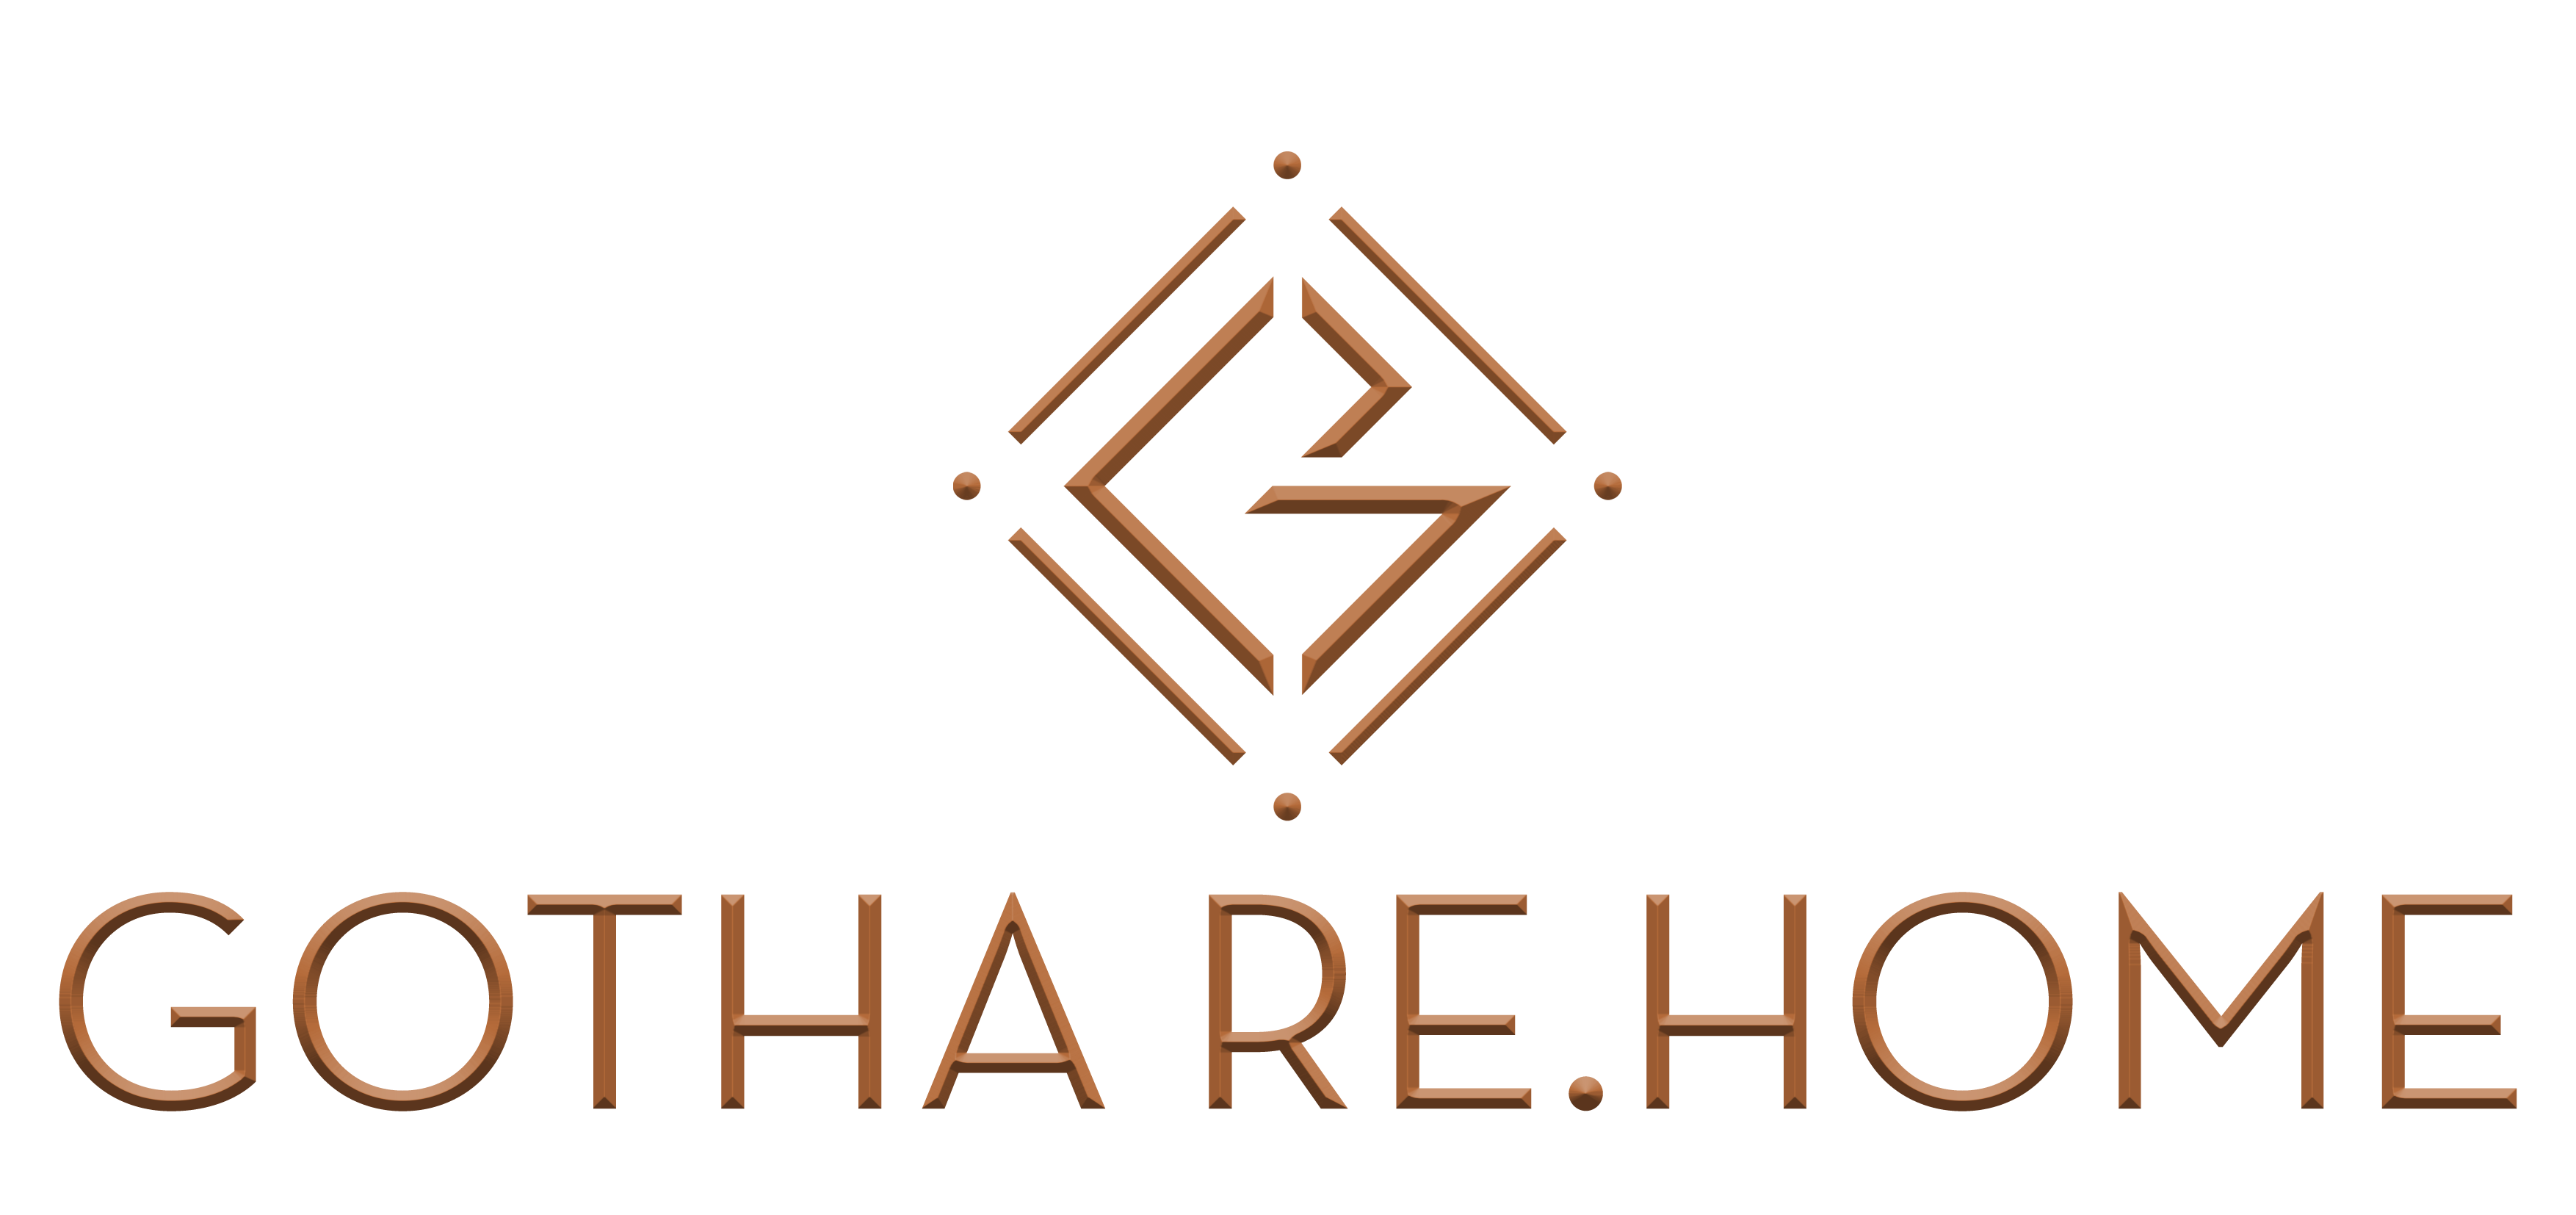 Gotha-re-home_logo1.png